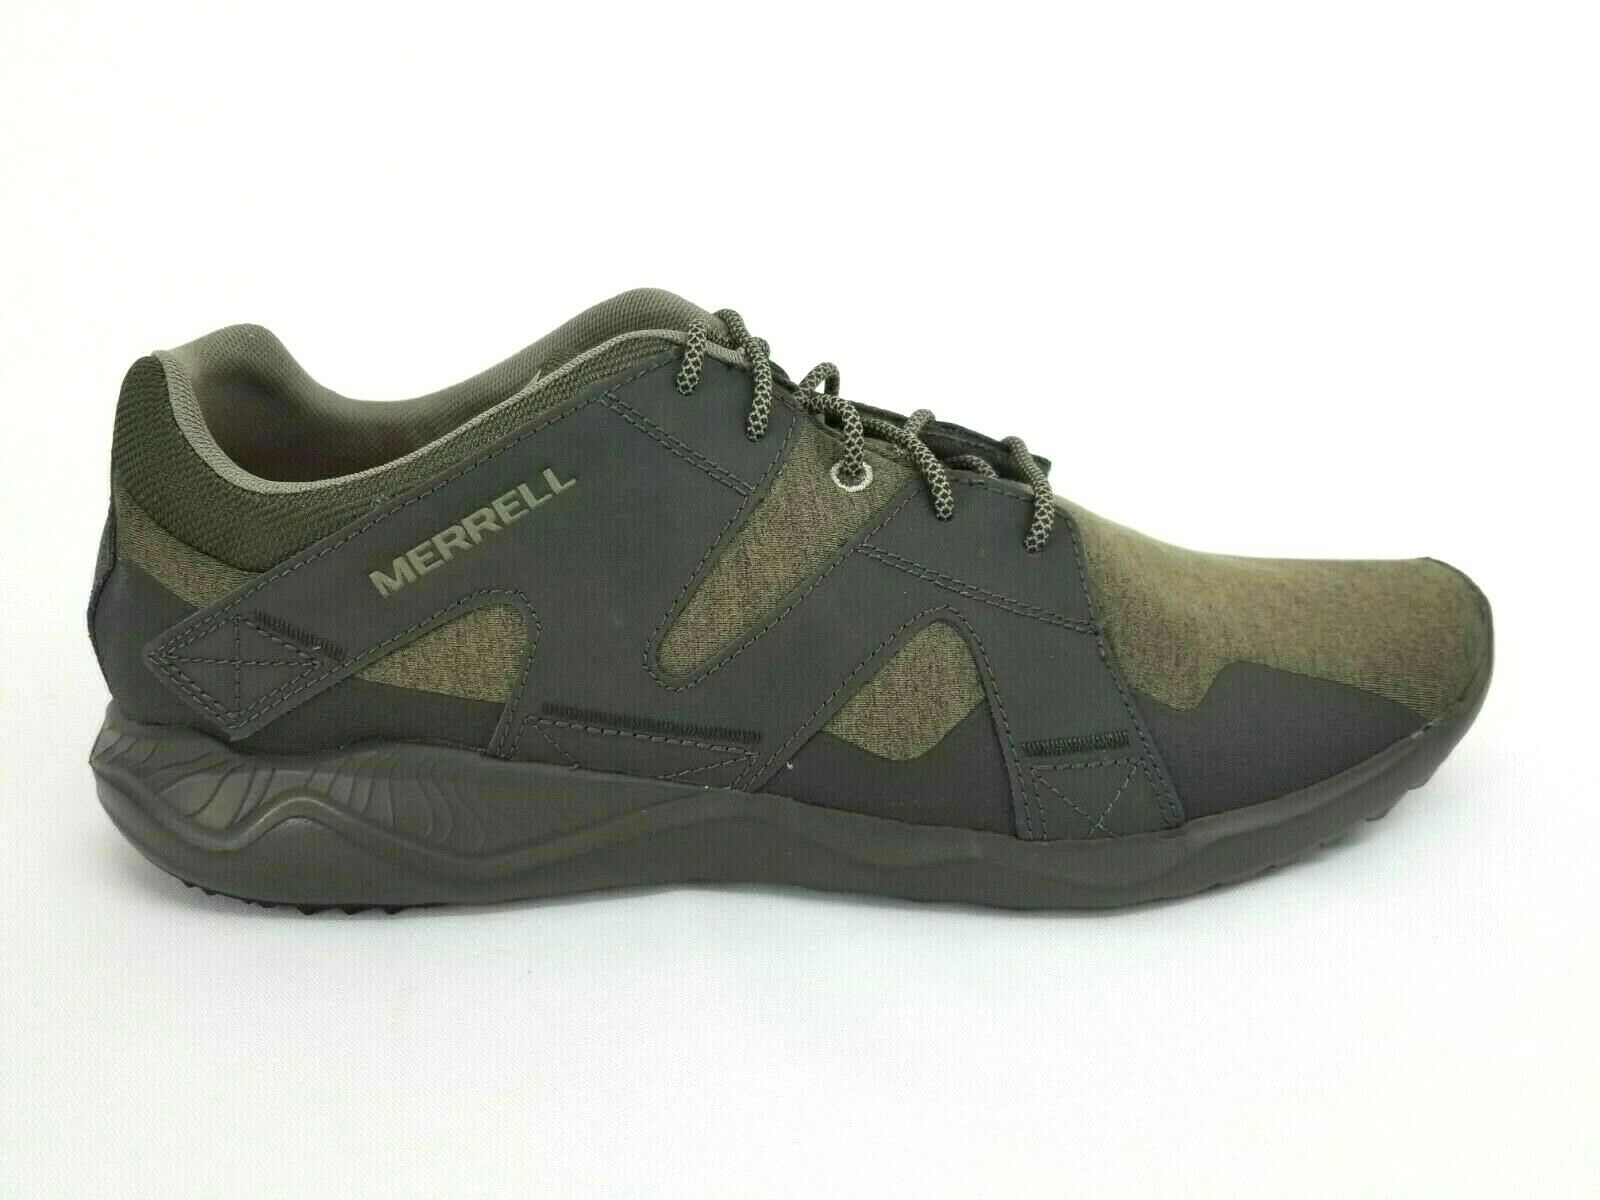 NWOB Merrell J07049 1SIX8 Lace Olive Athletic Sneaker shoes Men Size 15 US